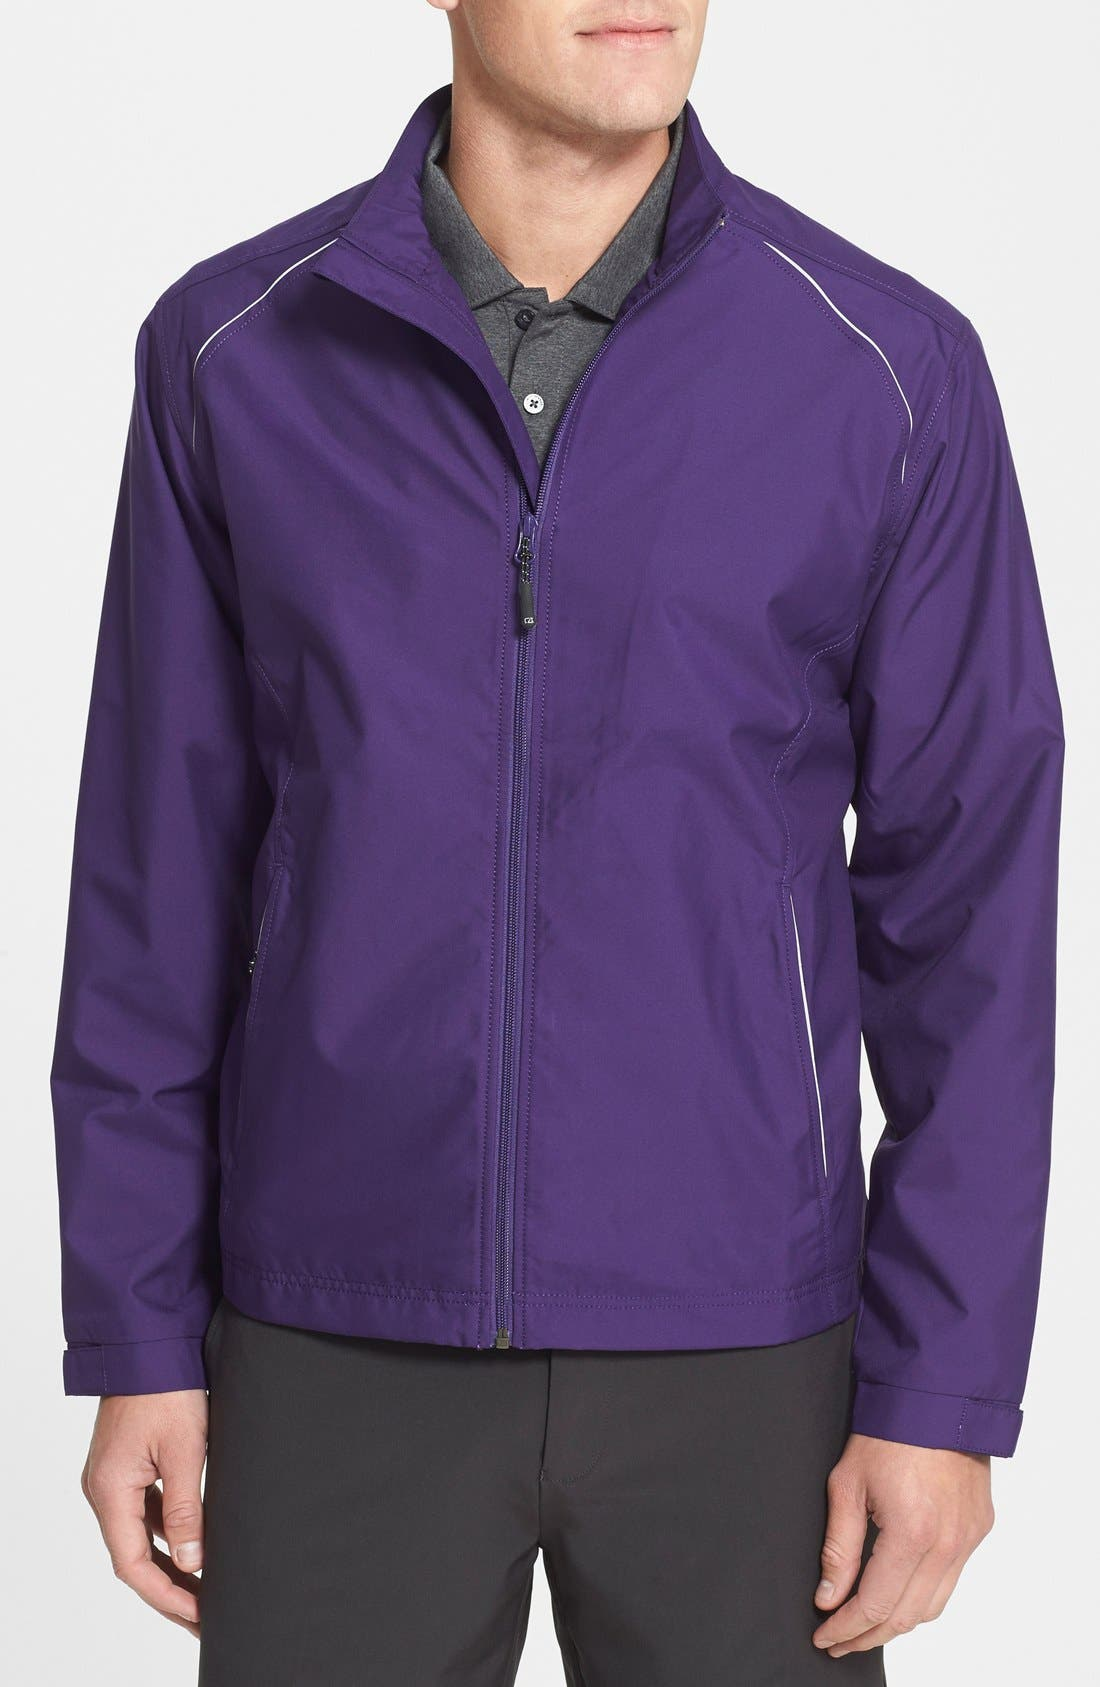 Alternate Image 1 Selected - Cutter & Buck WeatherTec Beacon Water Resistant Jacket